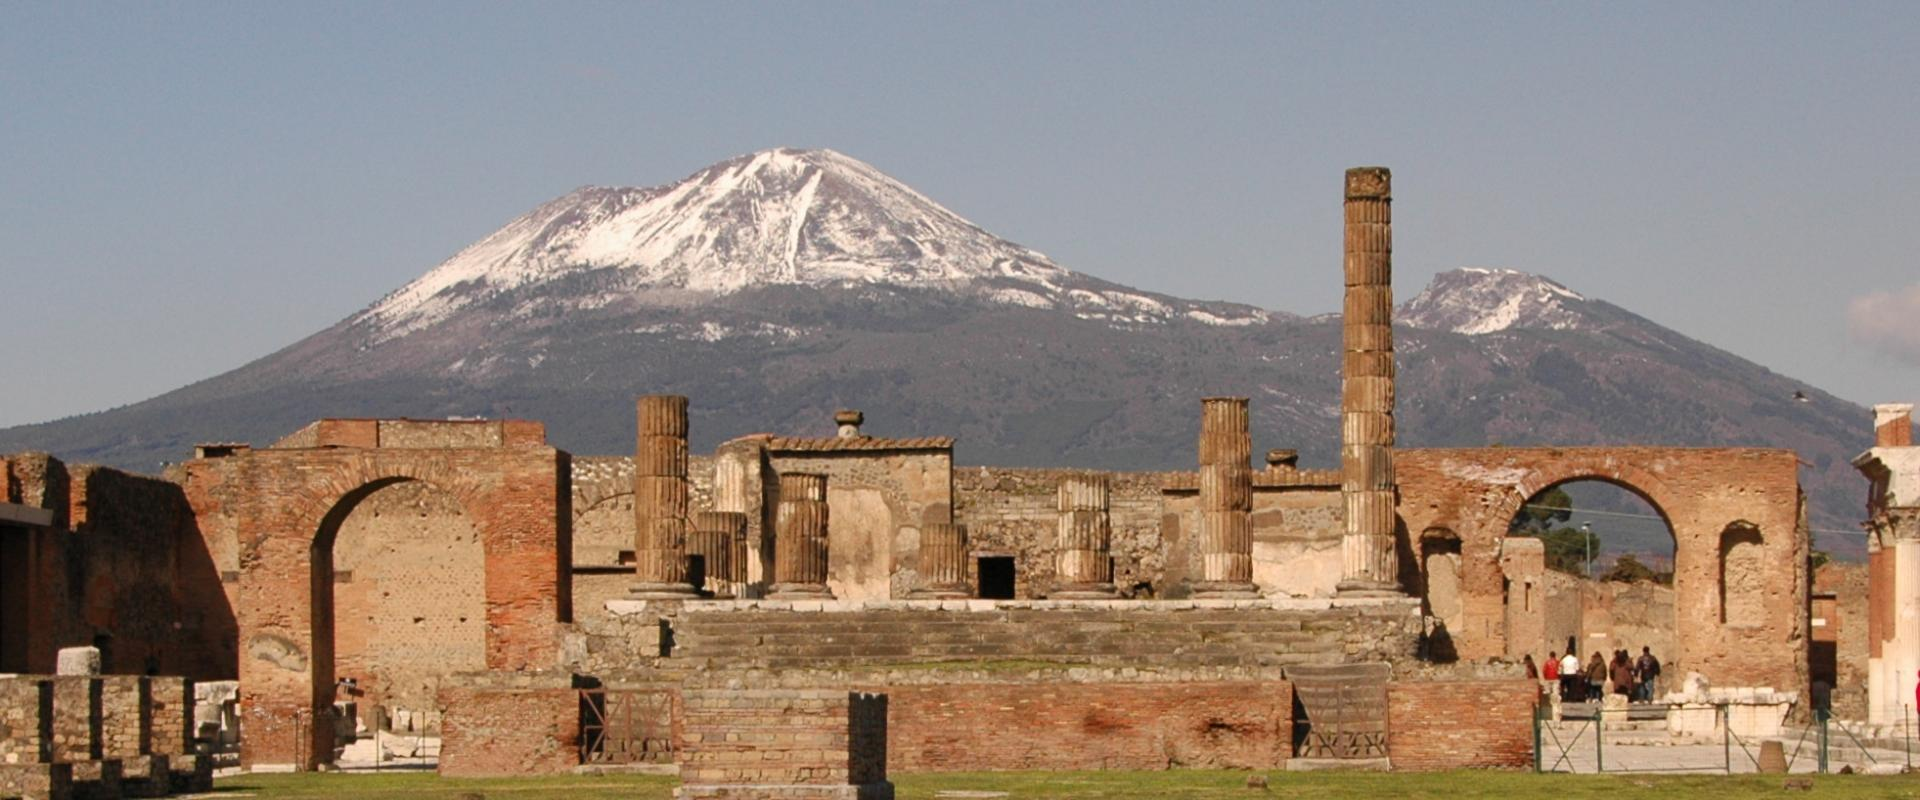 Visit of charming Pompei and excursion on wonderful ...